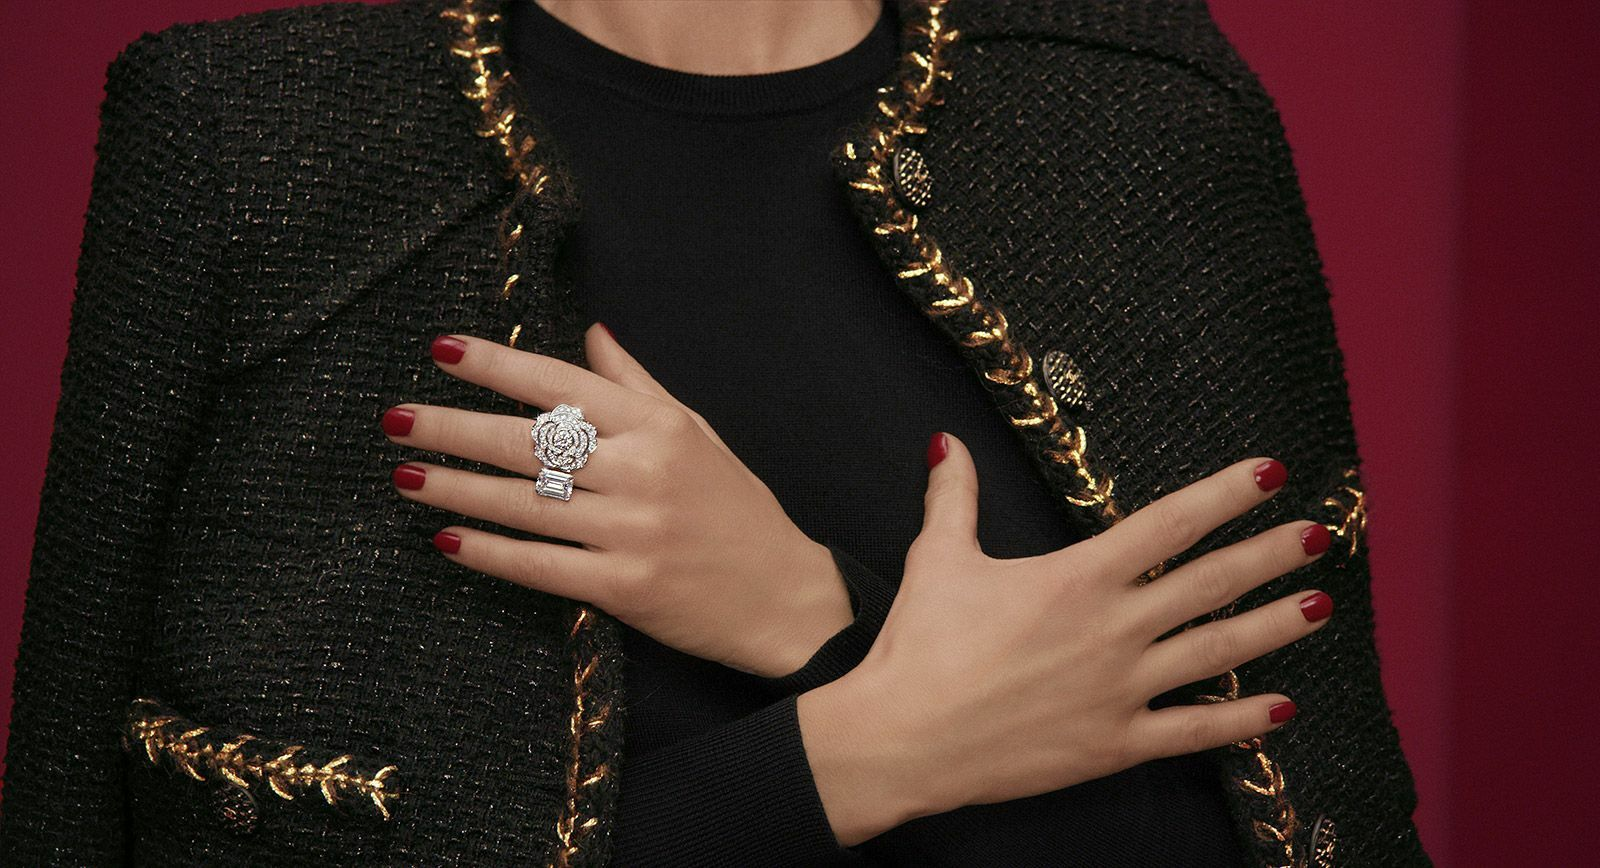 Asymmetric design in Chanel haute joaillerie 1.5 collection 'Contraste Blanc' ring